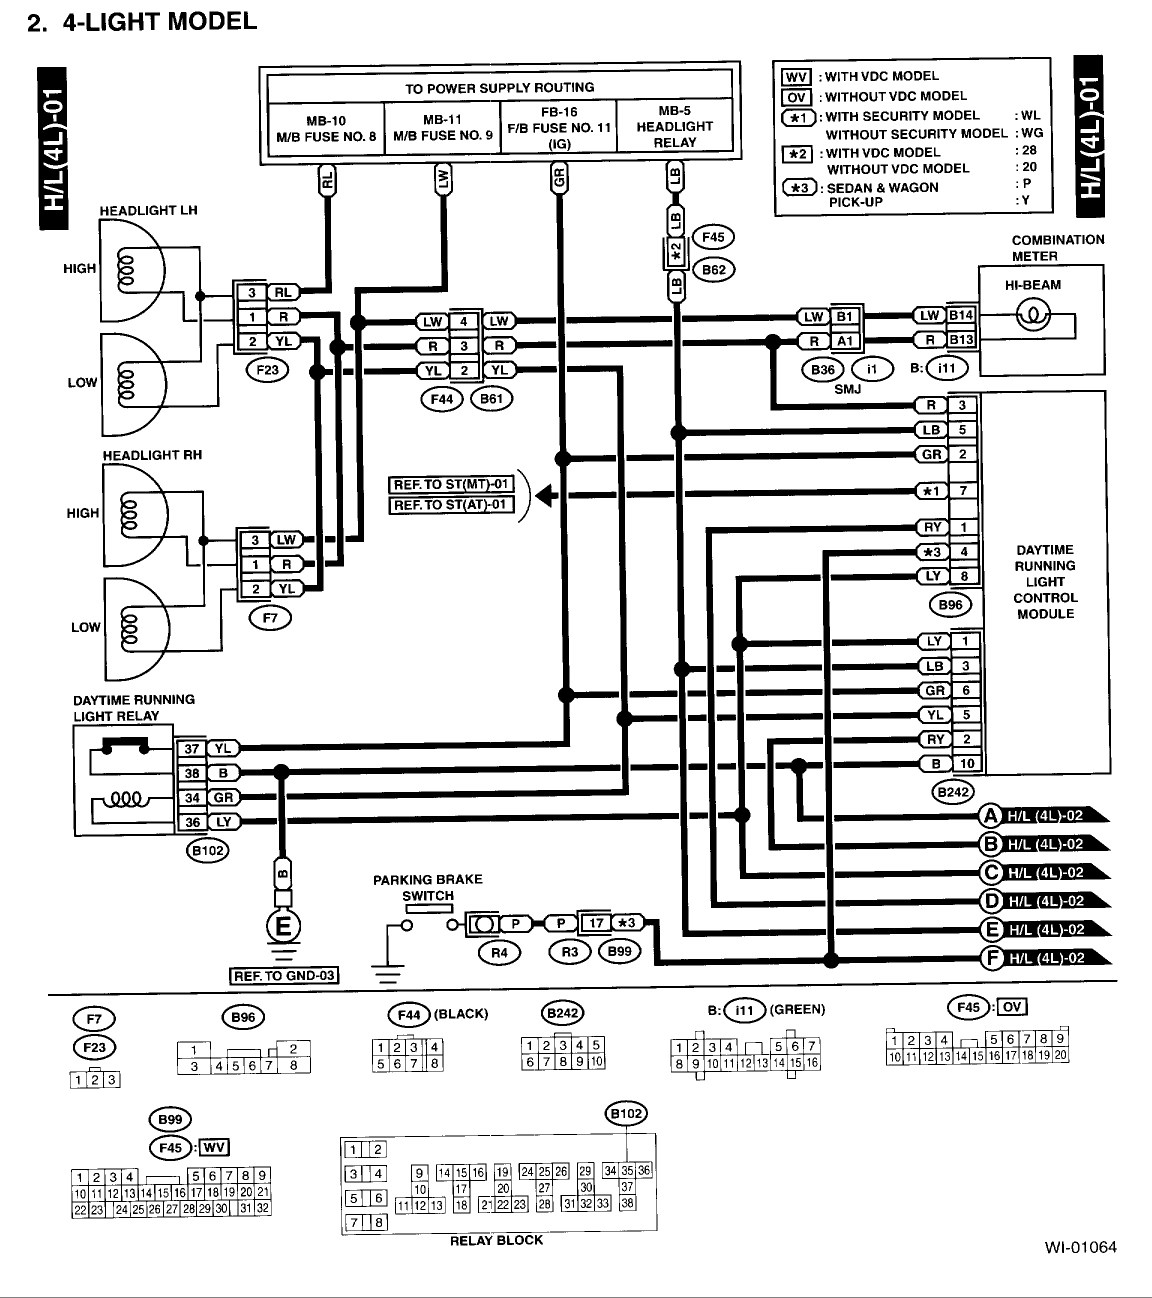 subaru ea81 wiring diagram - show wiring diagram adnd-a -  adnd-a.controversoquotidiano.it  controversoquotidiano.it